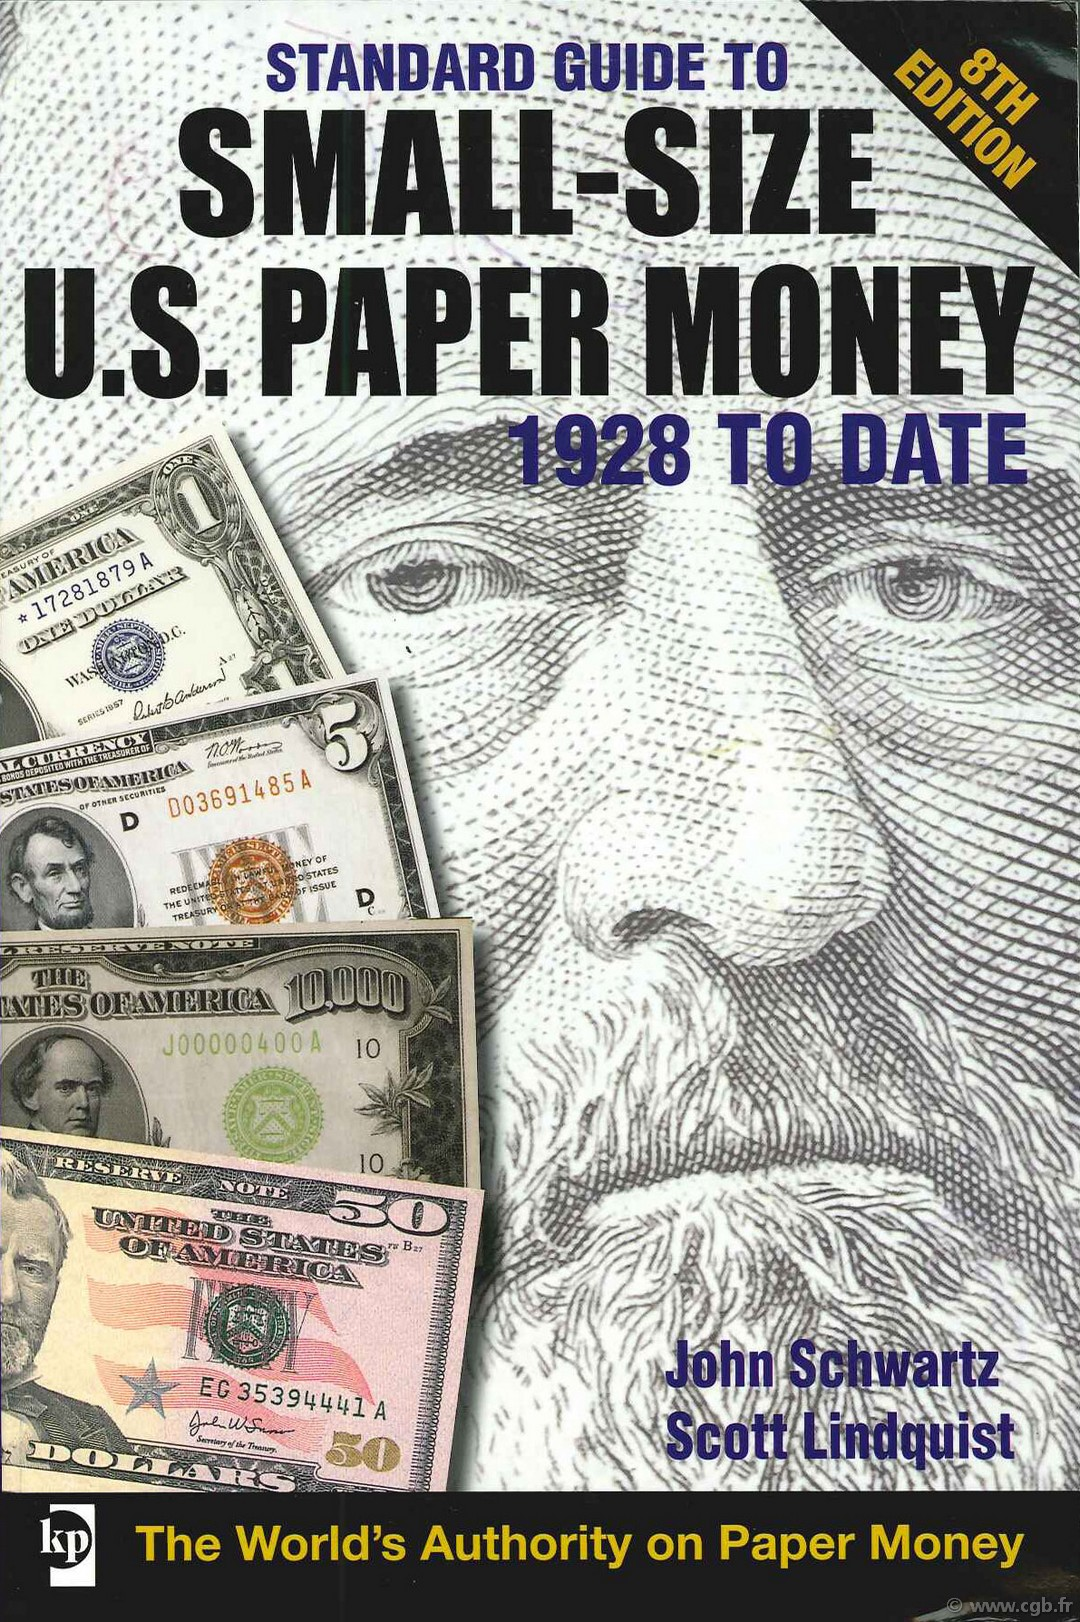 Standard Guide to Small Size U.S. Paper Money : 1928 to Date - 8th edition SCHWARTZ John, LANDQUIST Scott